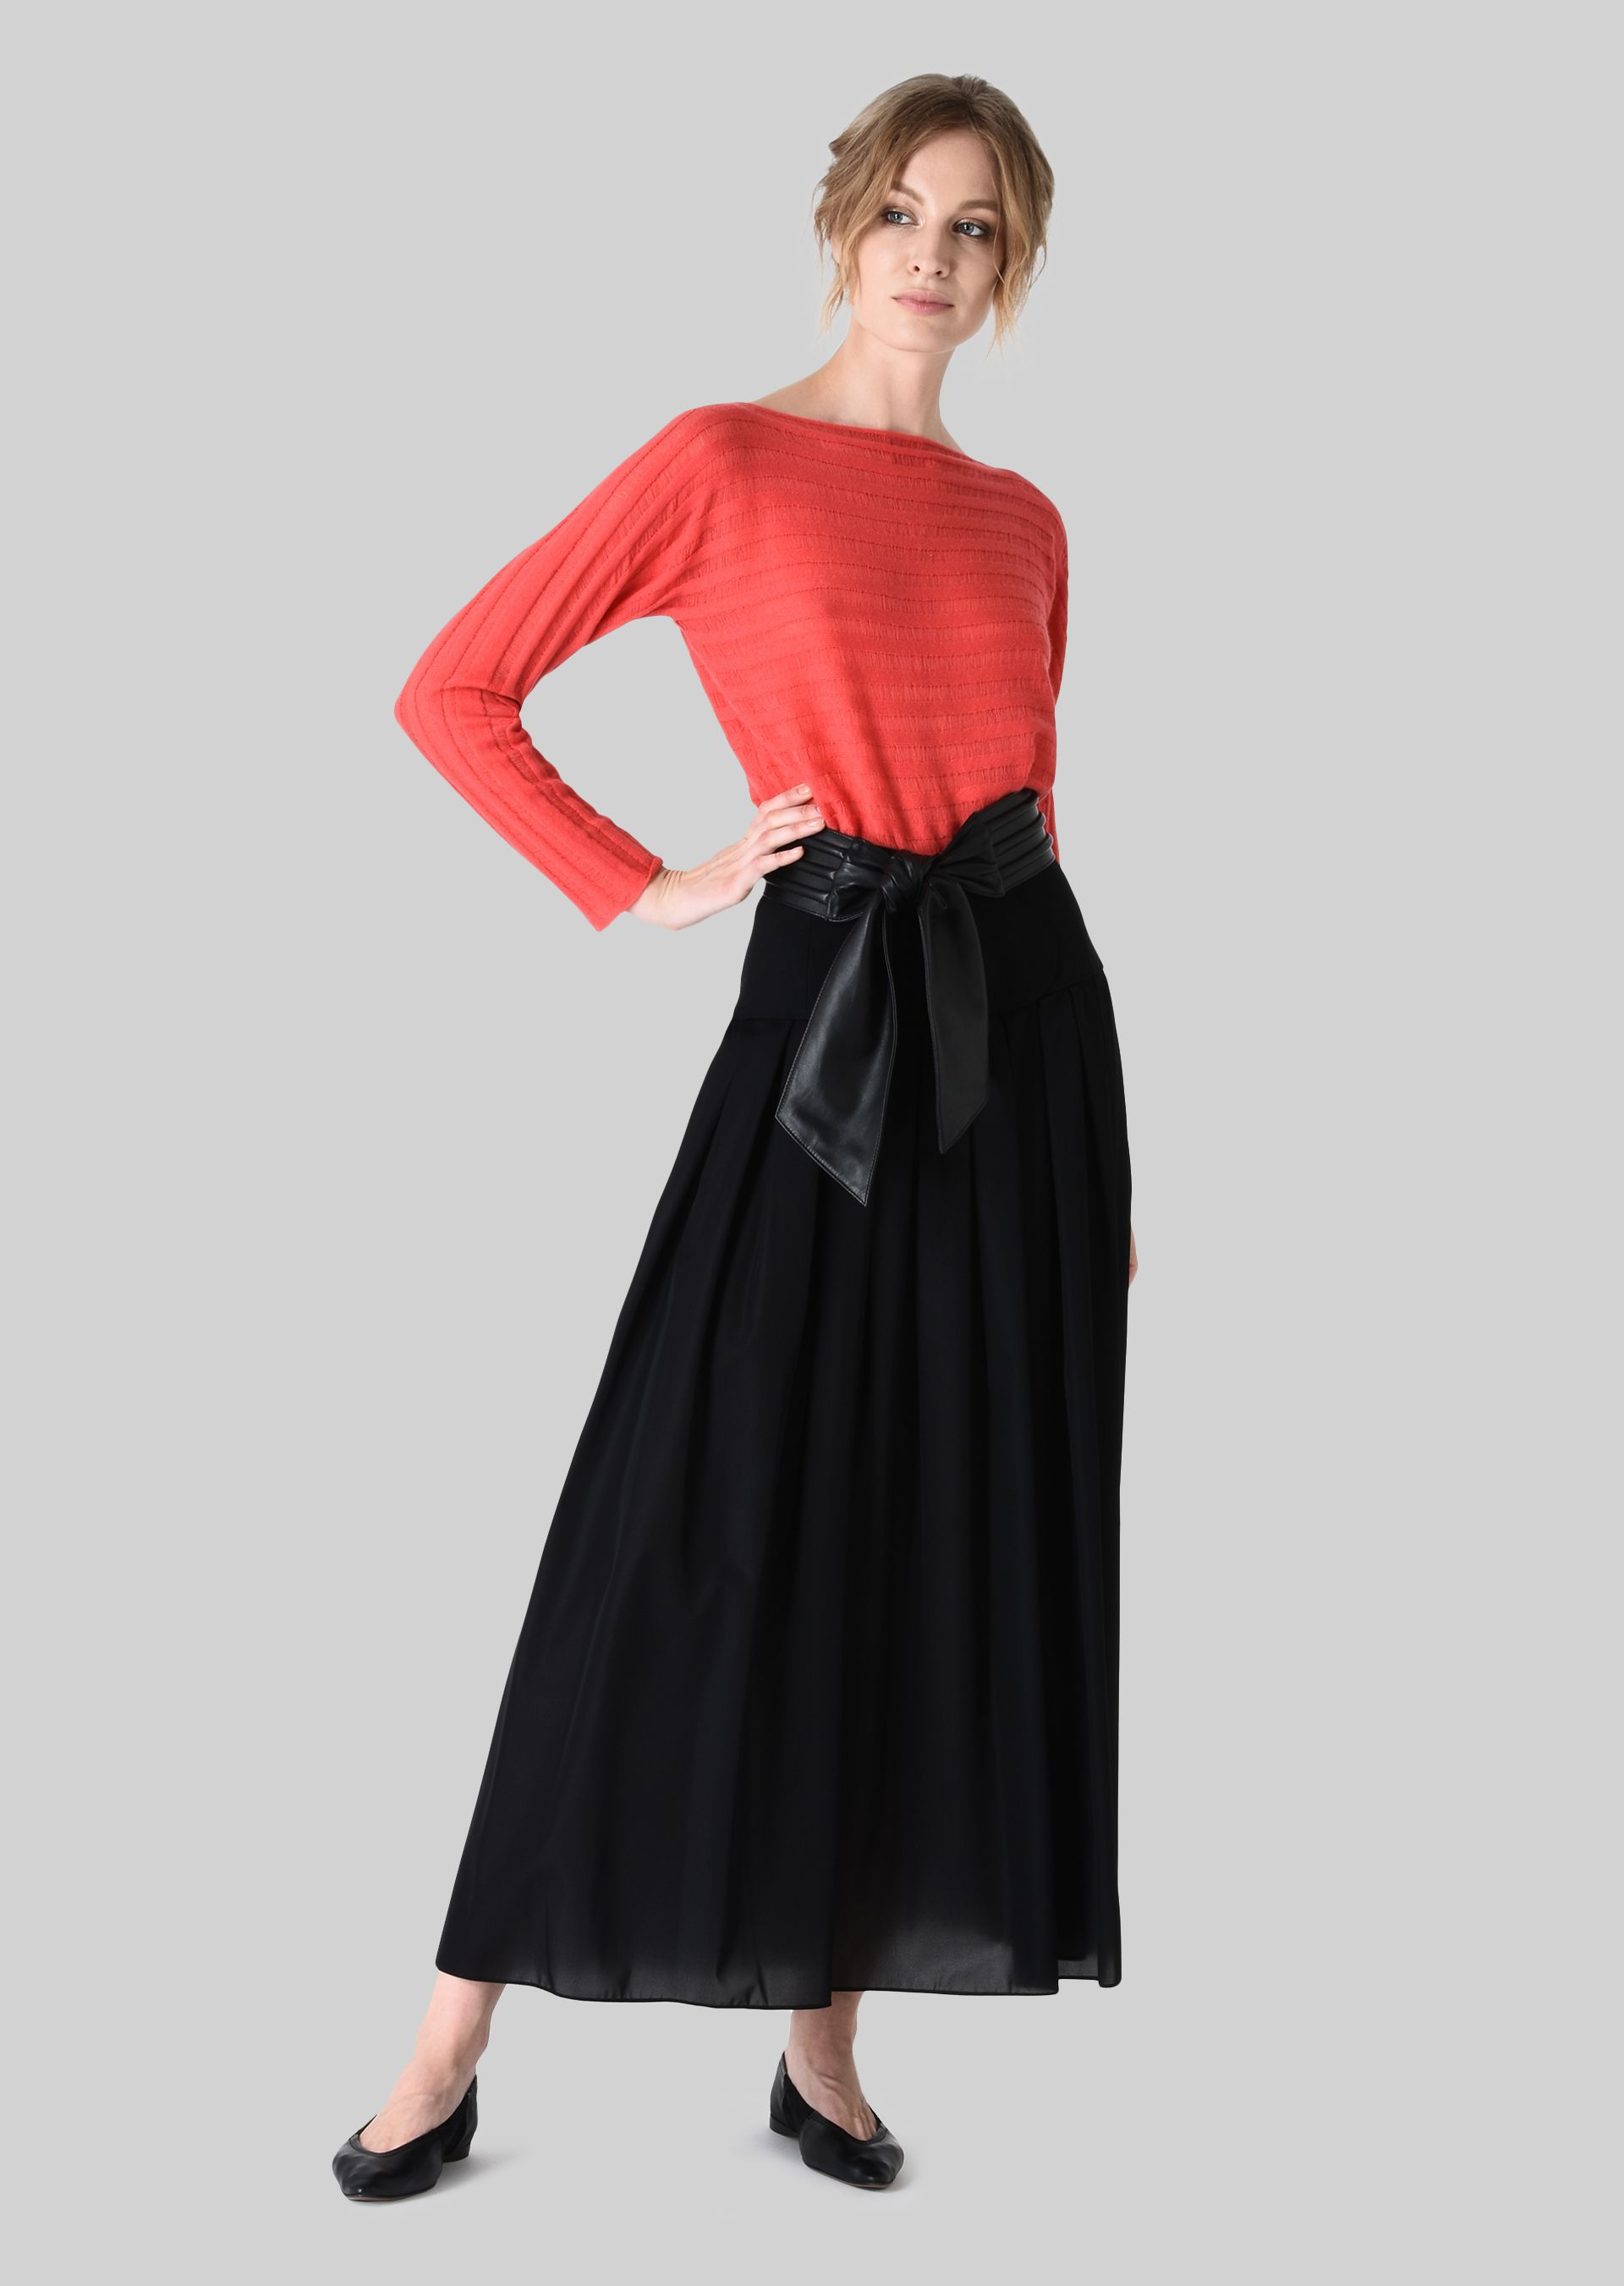 GIORGIO ARMANI LONG SKIRT IN TECHNICAL CRÊPE DE CHINE. Skirt D f